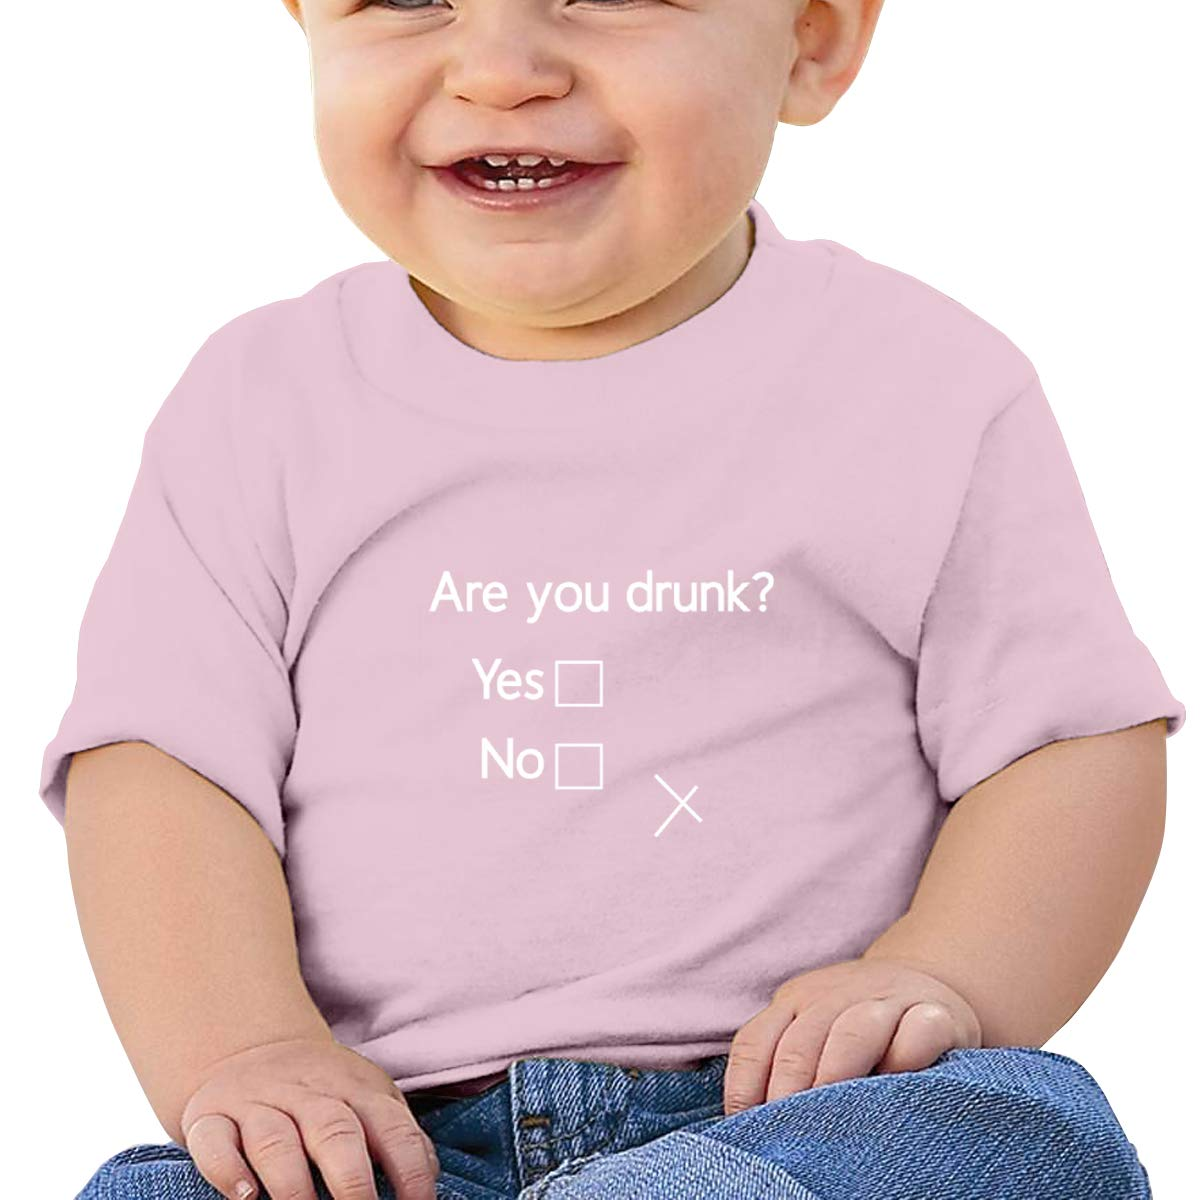 are You Drunk Short Sleeve Shirt Baby Boy Toddlers